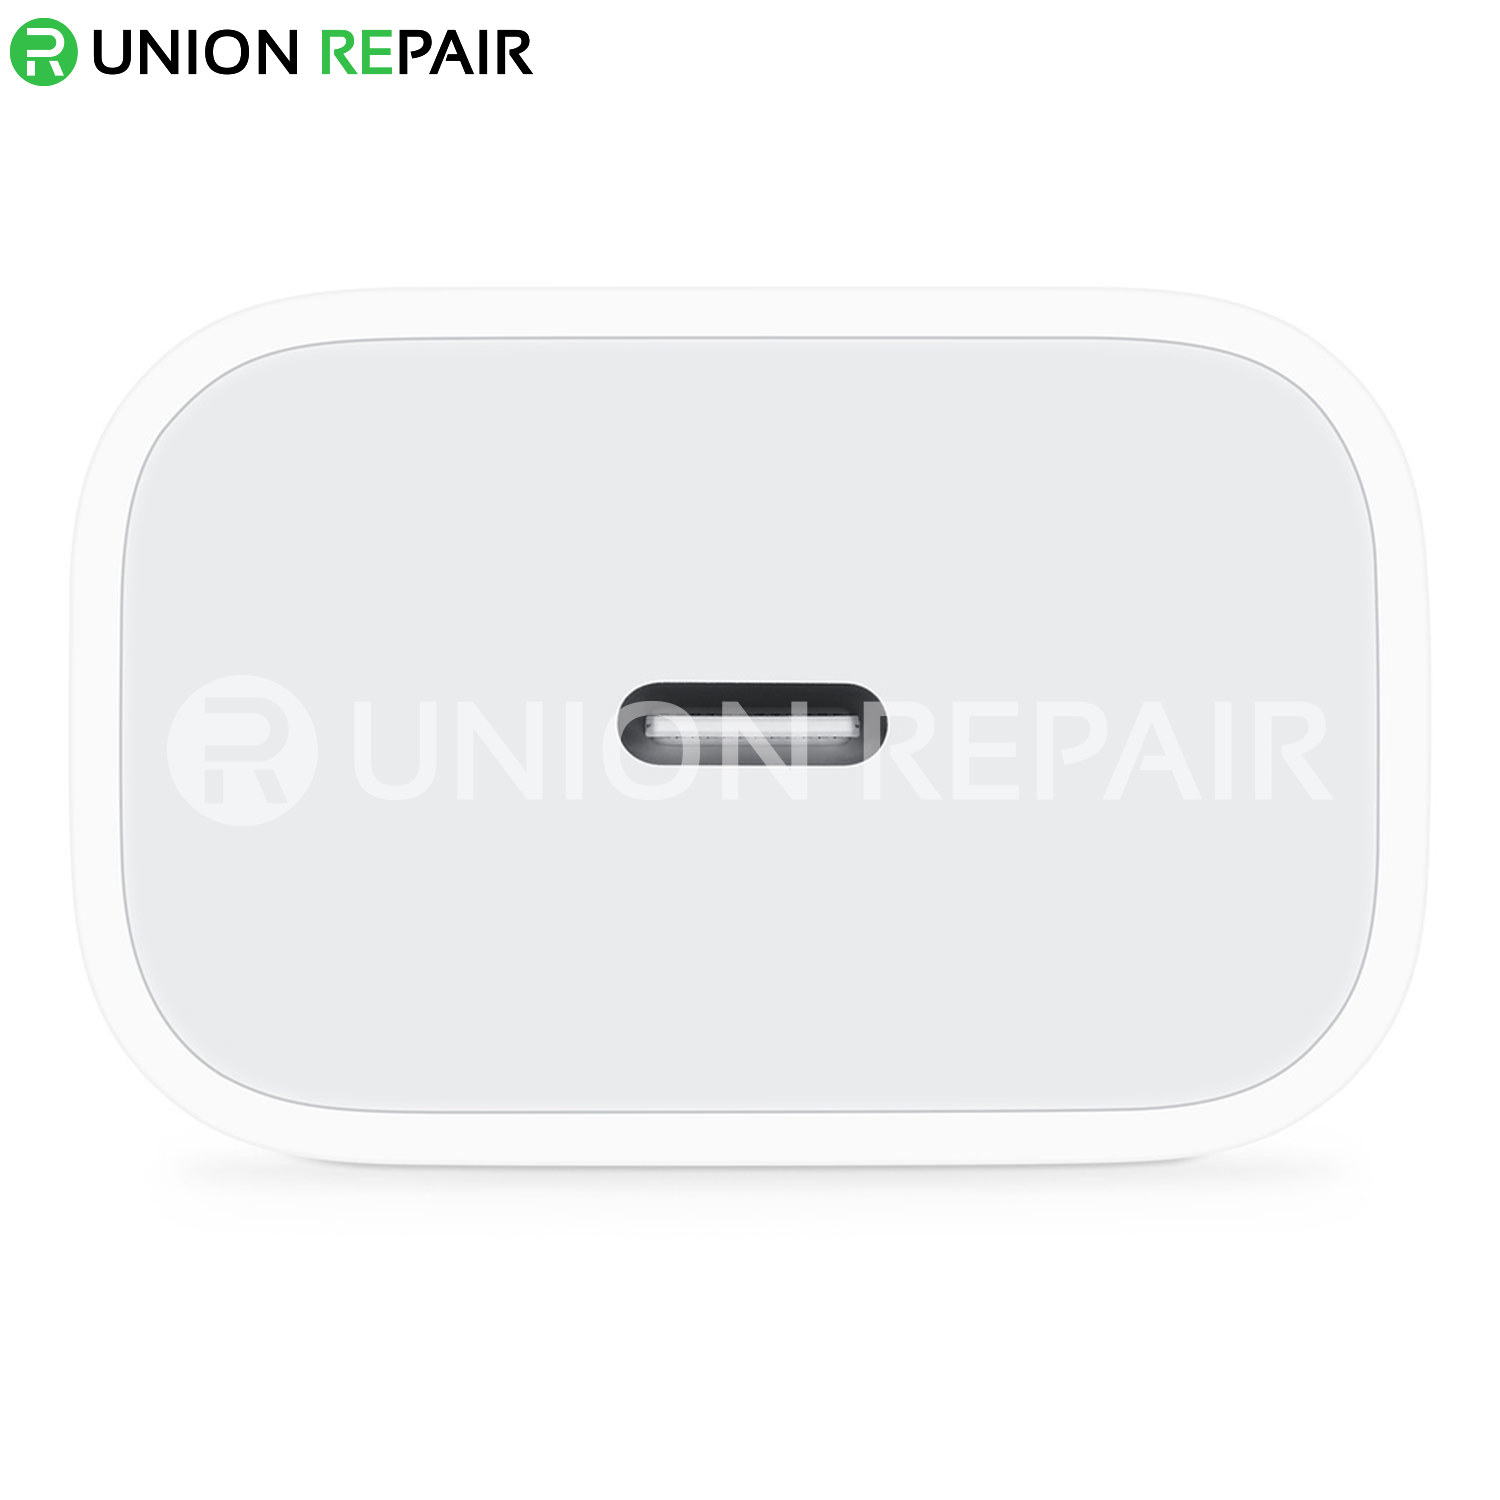 20W USB-C Power Adapter for iPhone - US Version